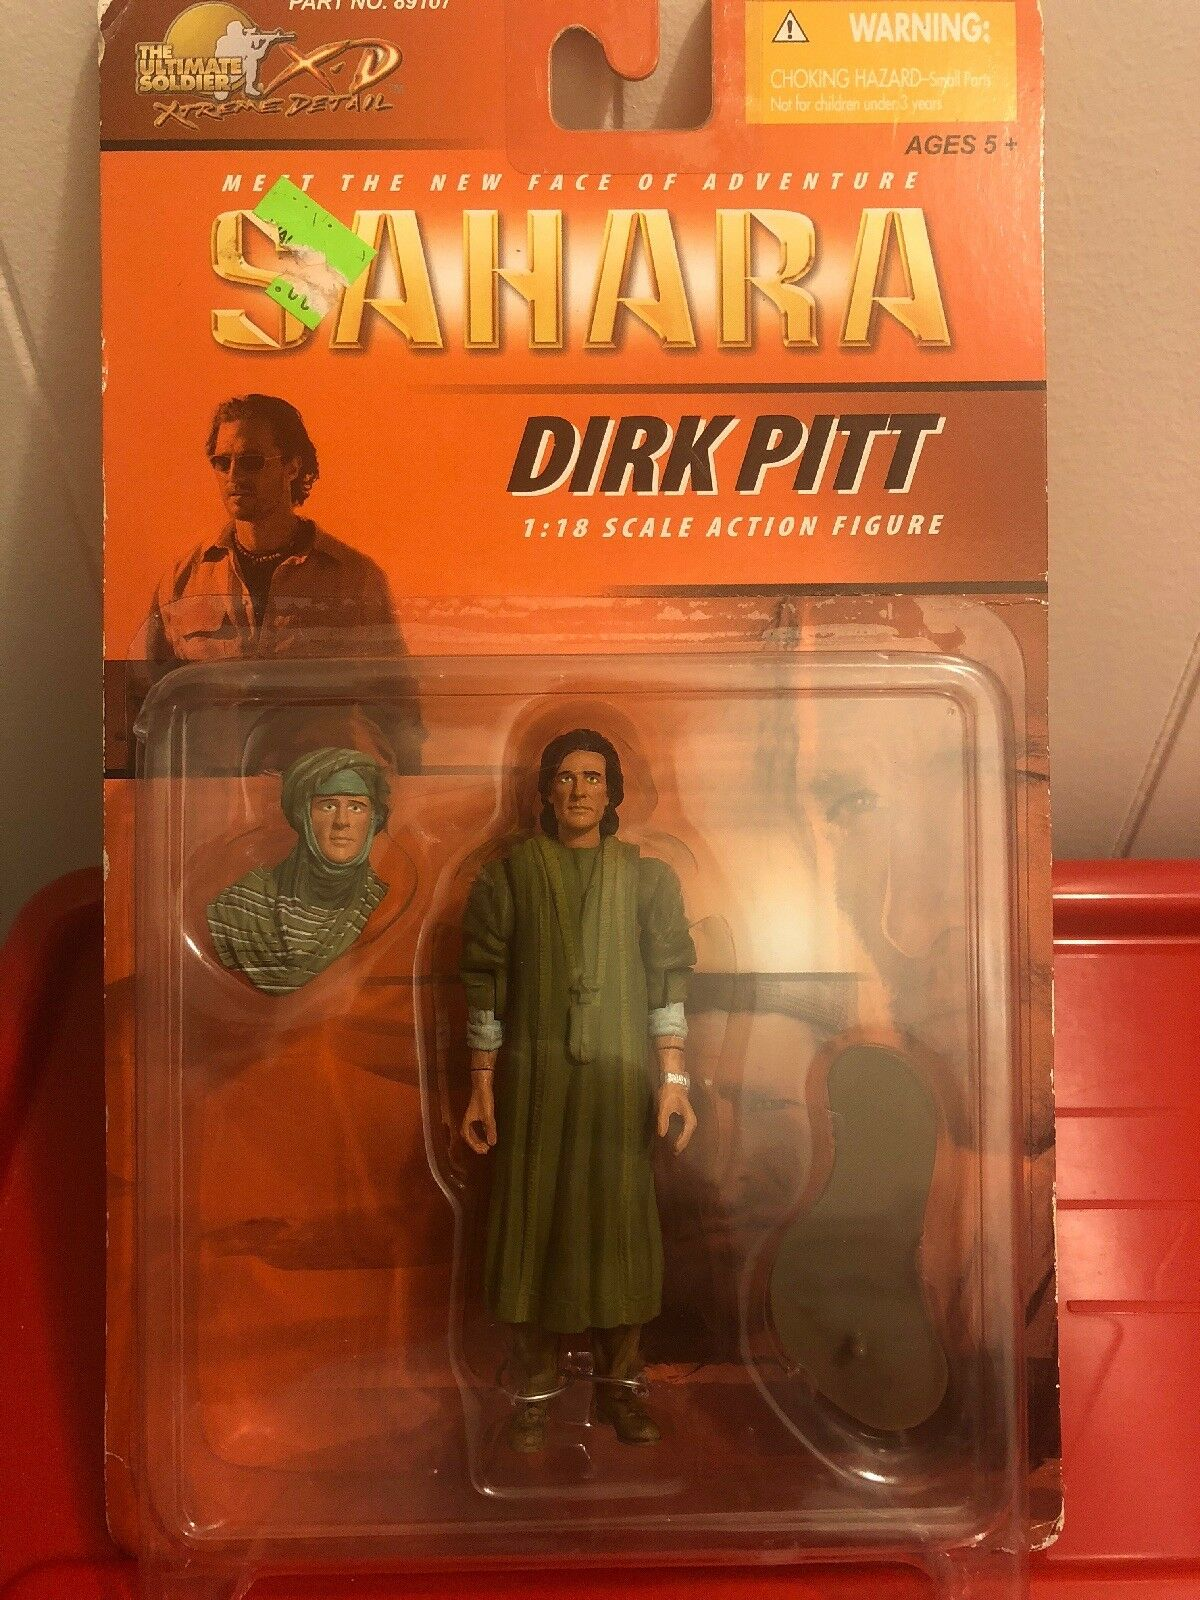 1:18 scale Matthew McConaughey As Dirk Pitt Action Figure - Clive Cussler's The